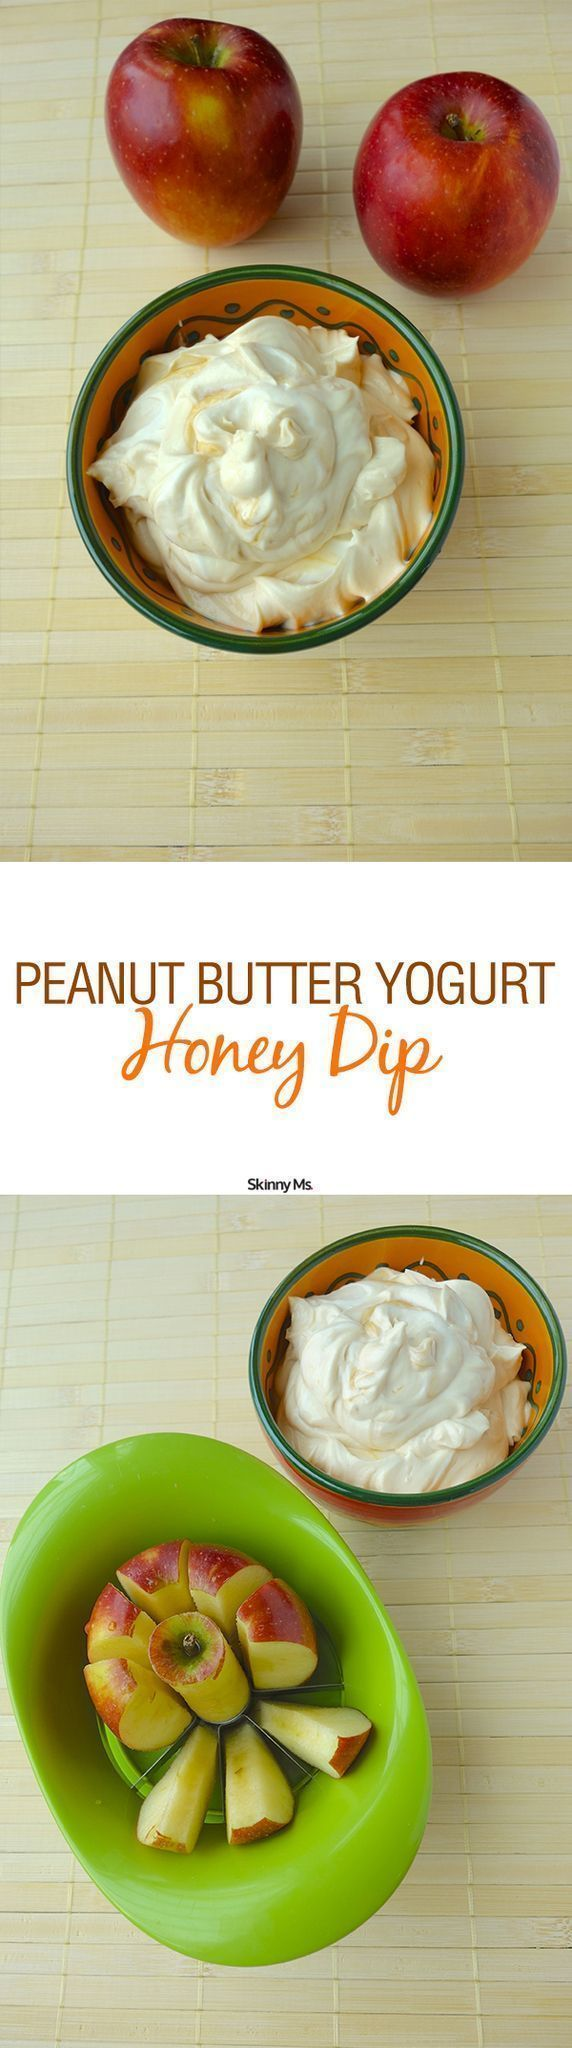 Just three ingredients make up this delicious and nutritious snack--Peanut Butter, Yogurt, Honey Dip! #cleaneating